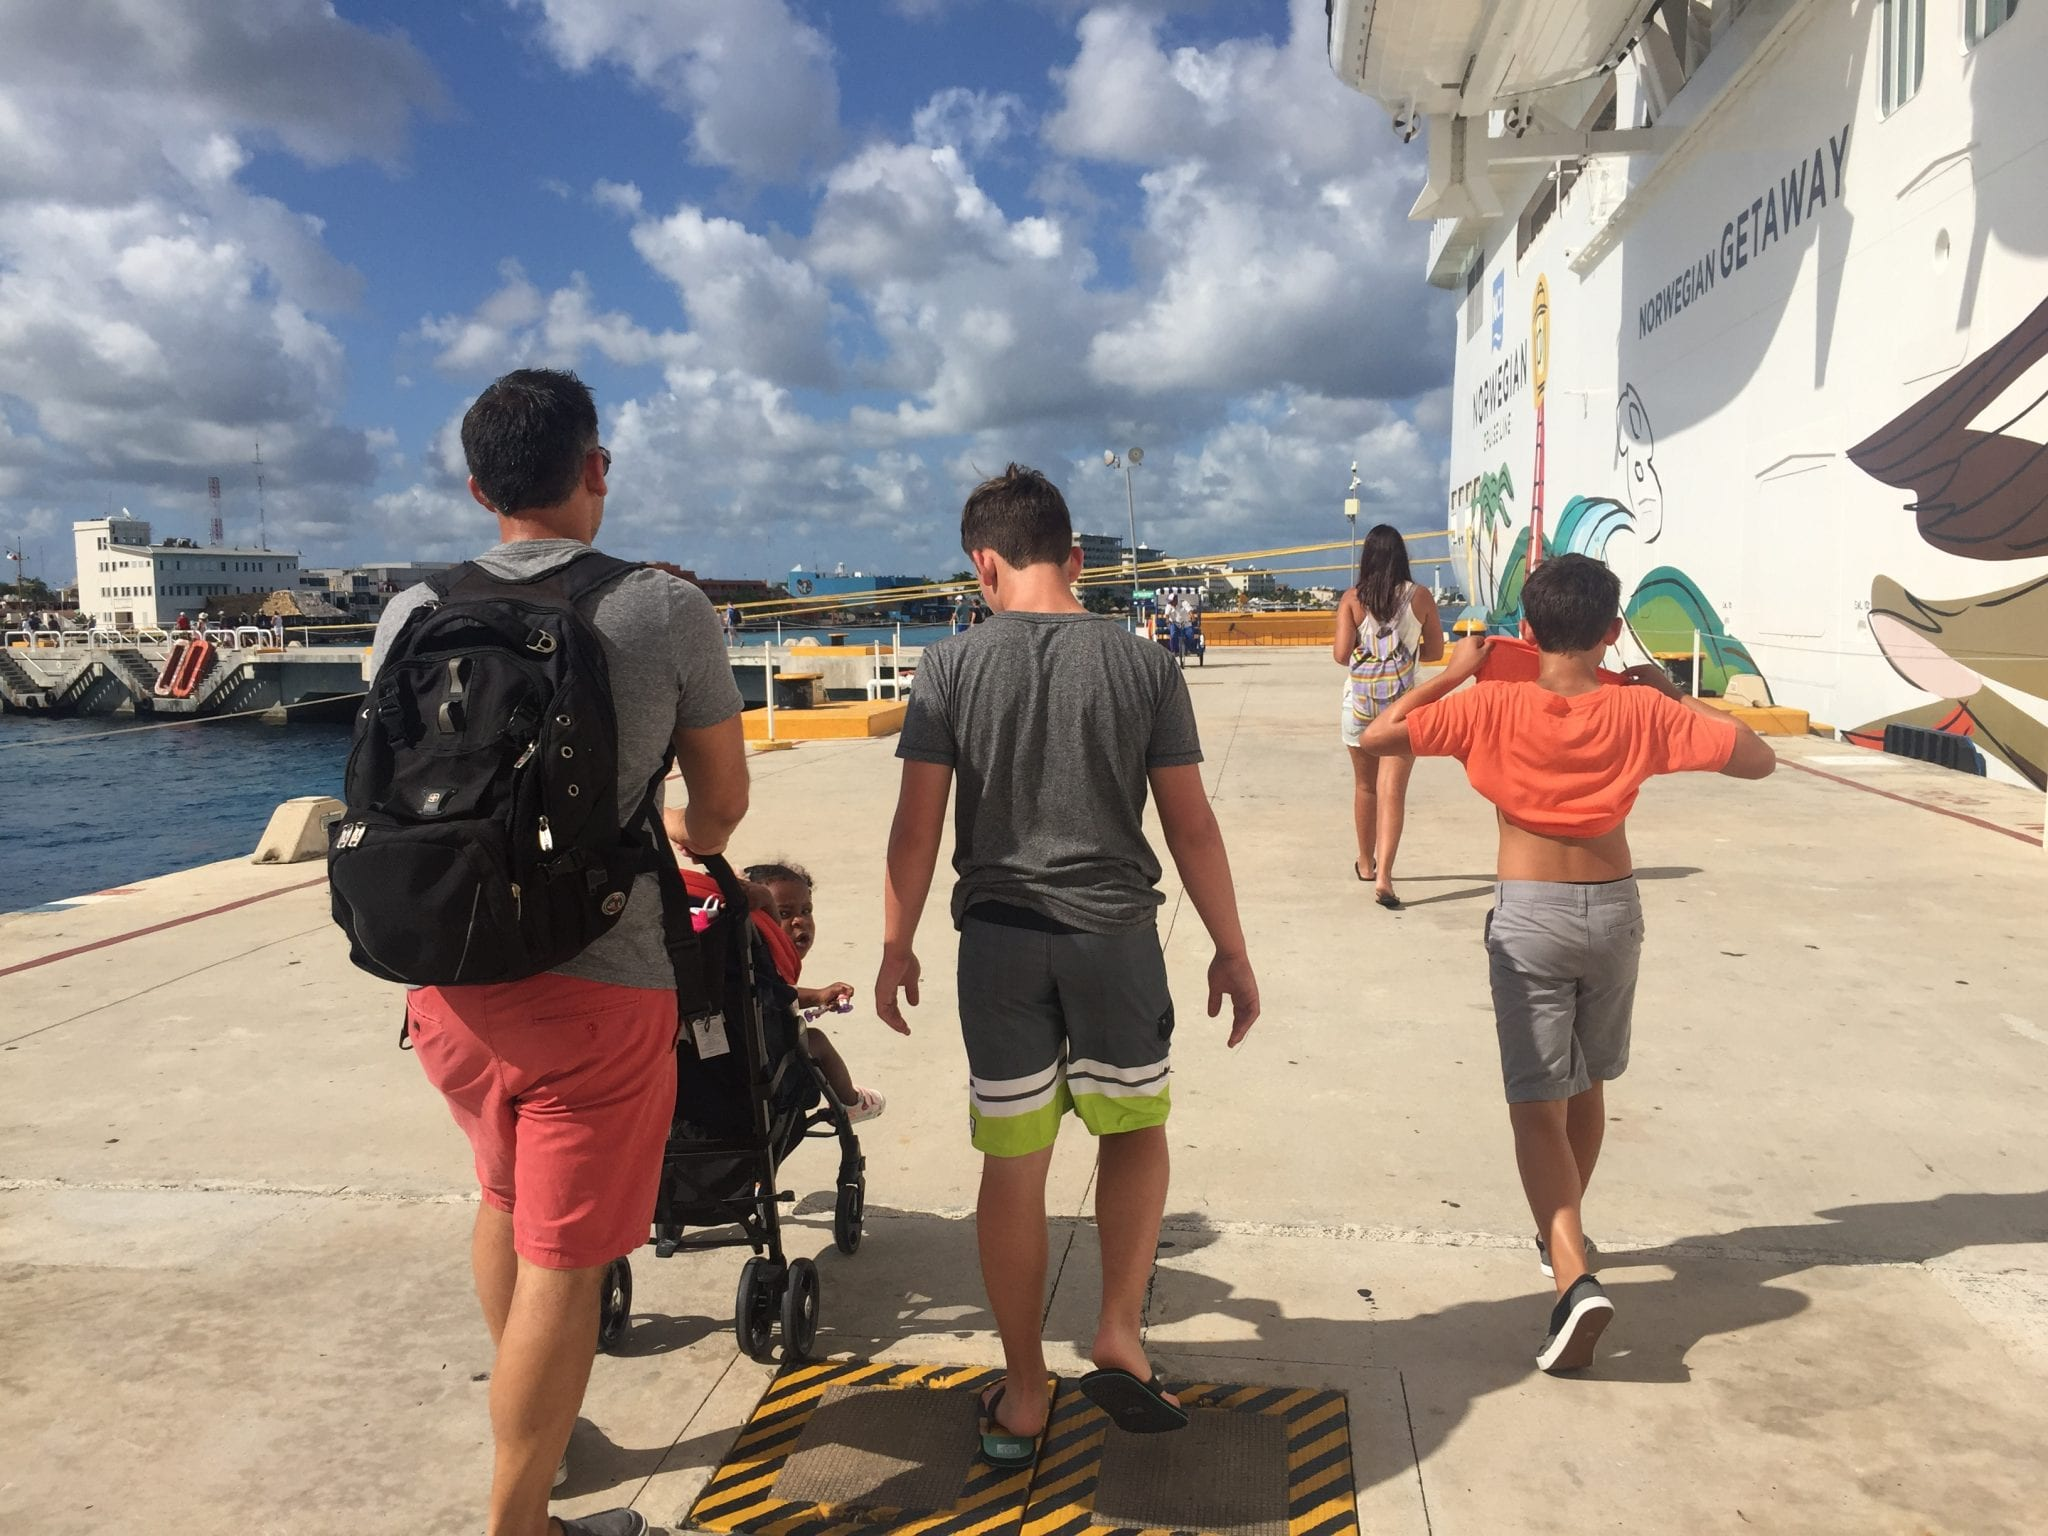 family getting off the cruise ship in port at Cozumel